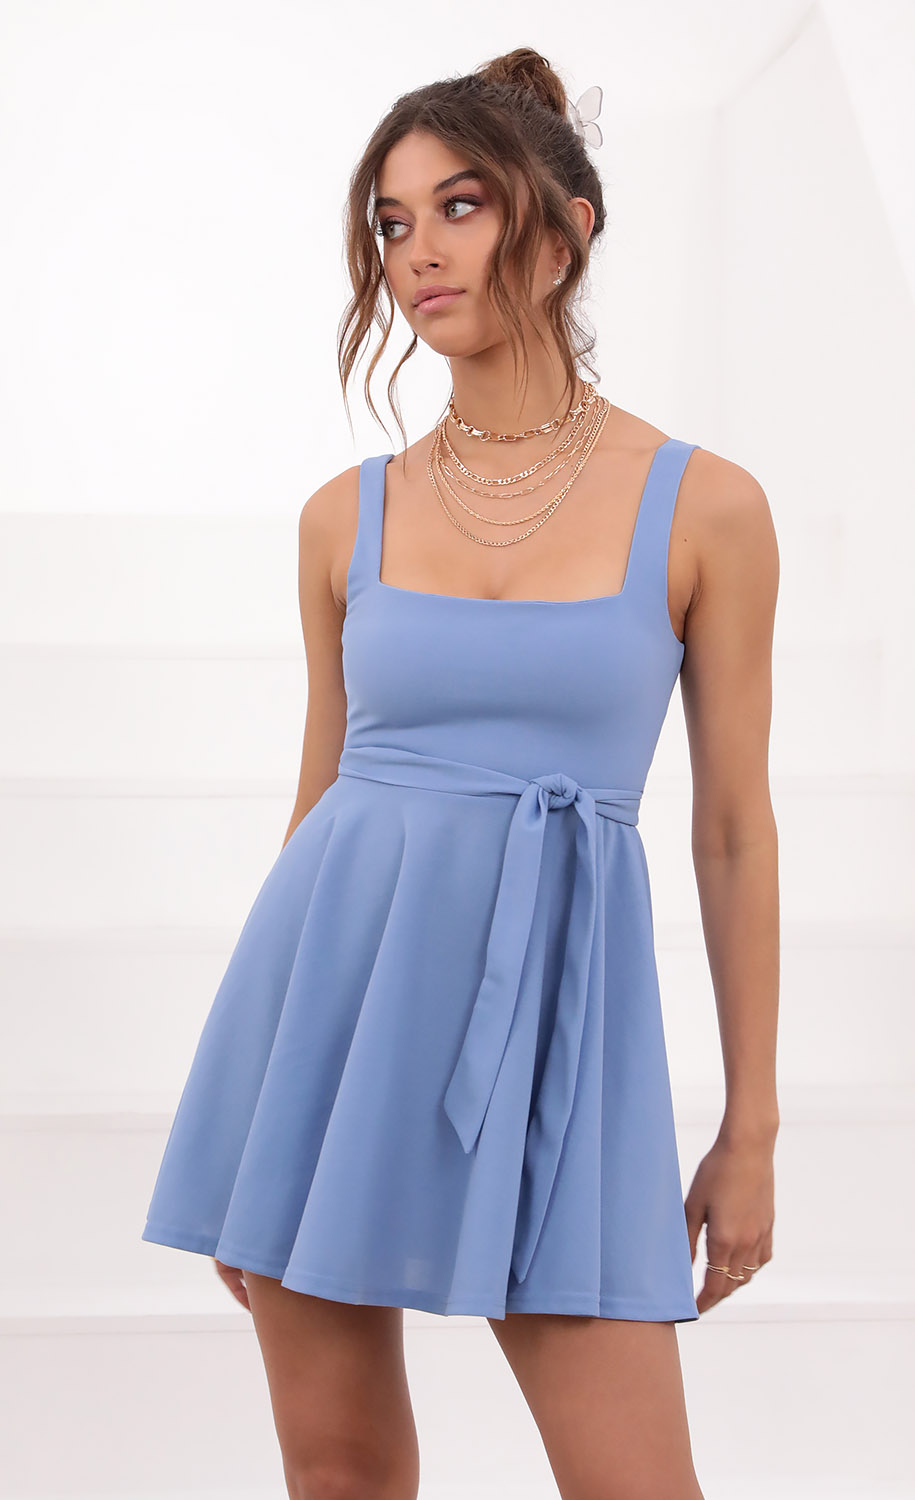 Key West A-line Dress in Palace Blue